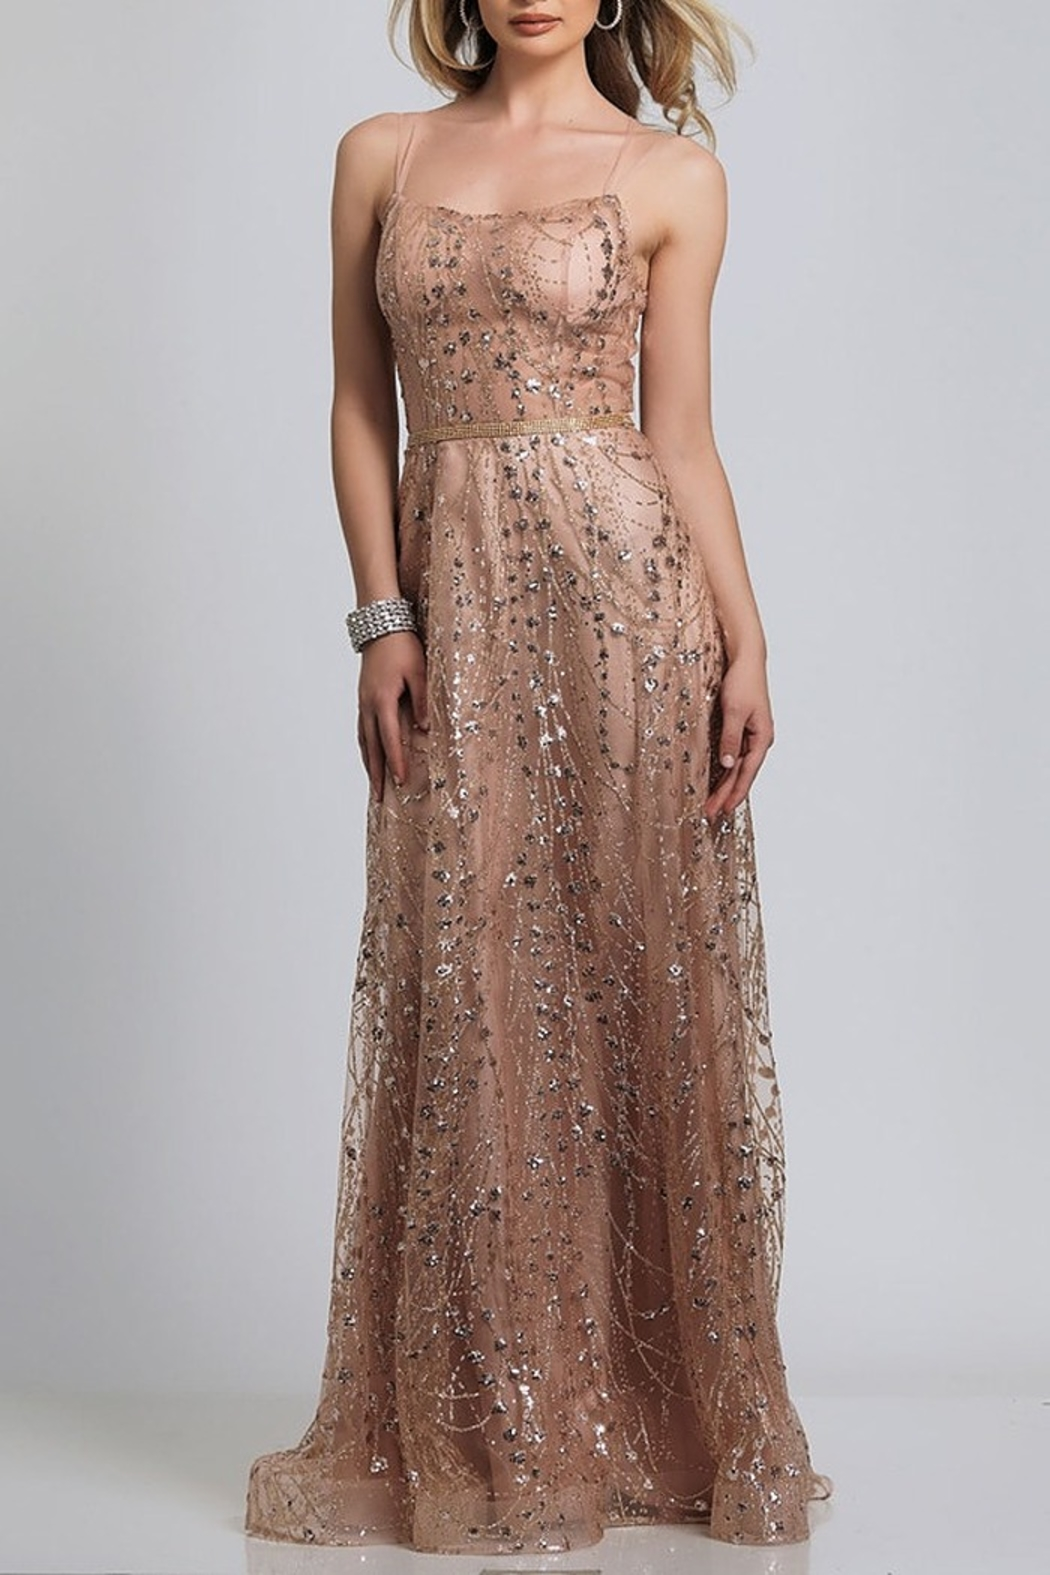 Dave and Johnny A-Line Sheer Tie Back Gown - Main Image